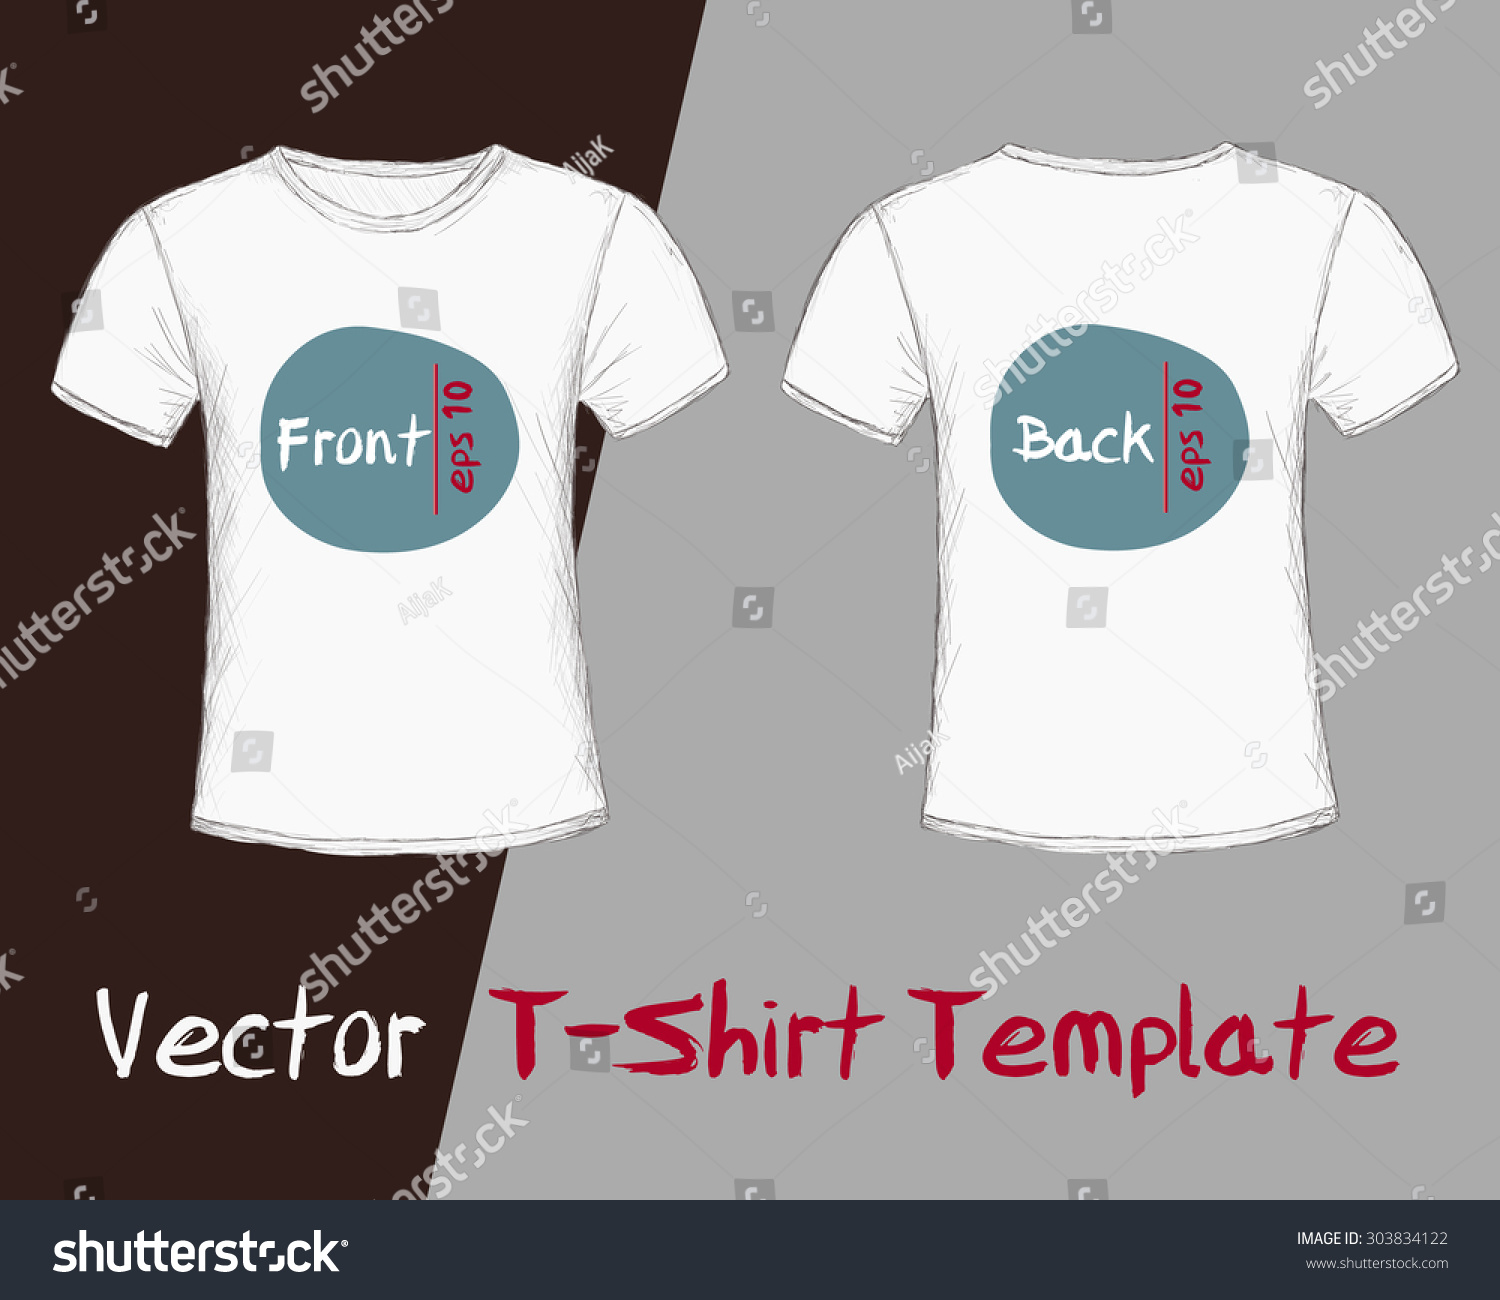 Vector of t shirt template male front and back view for T shirt sample design